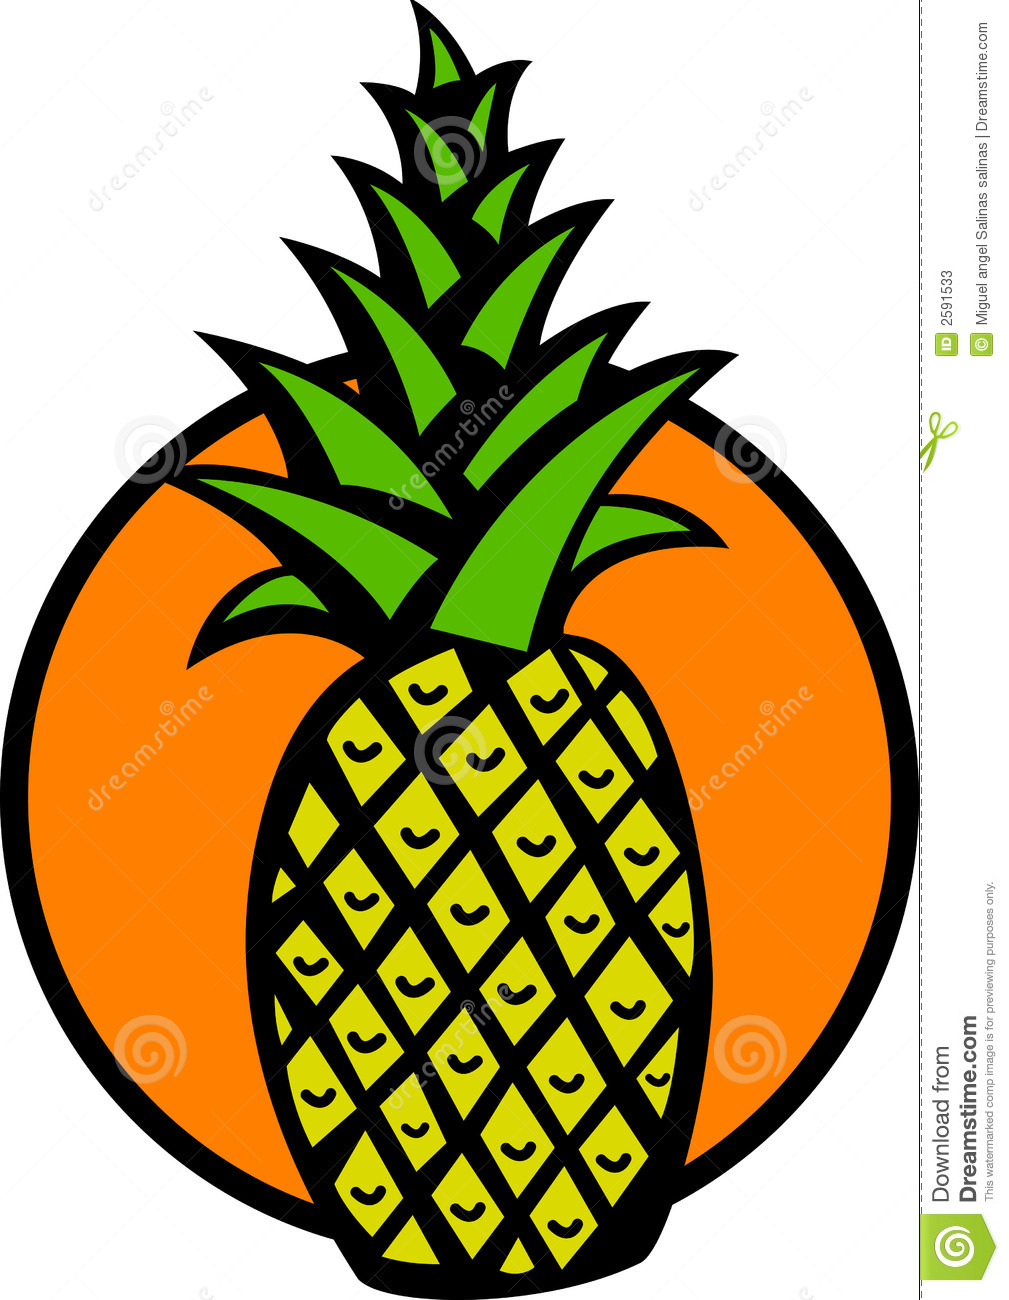 Pineapple Vector Illustration Stock Photos - Image: 2591533